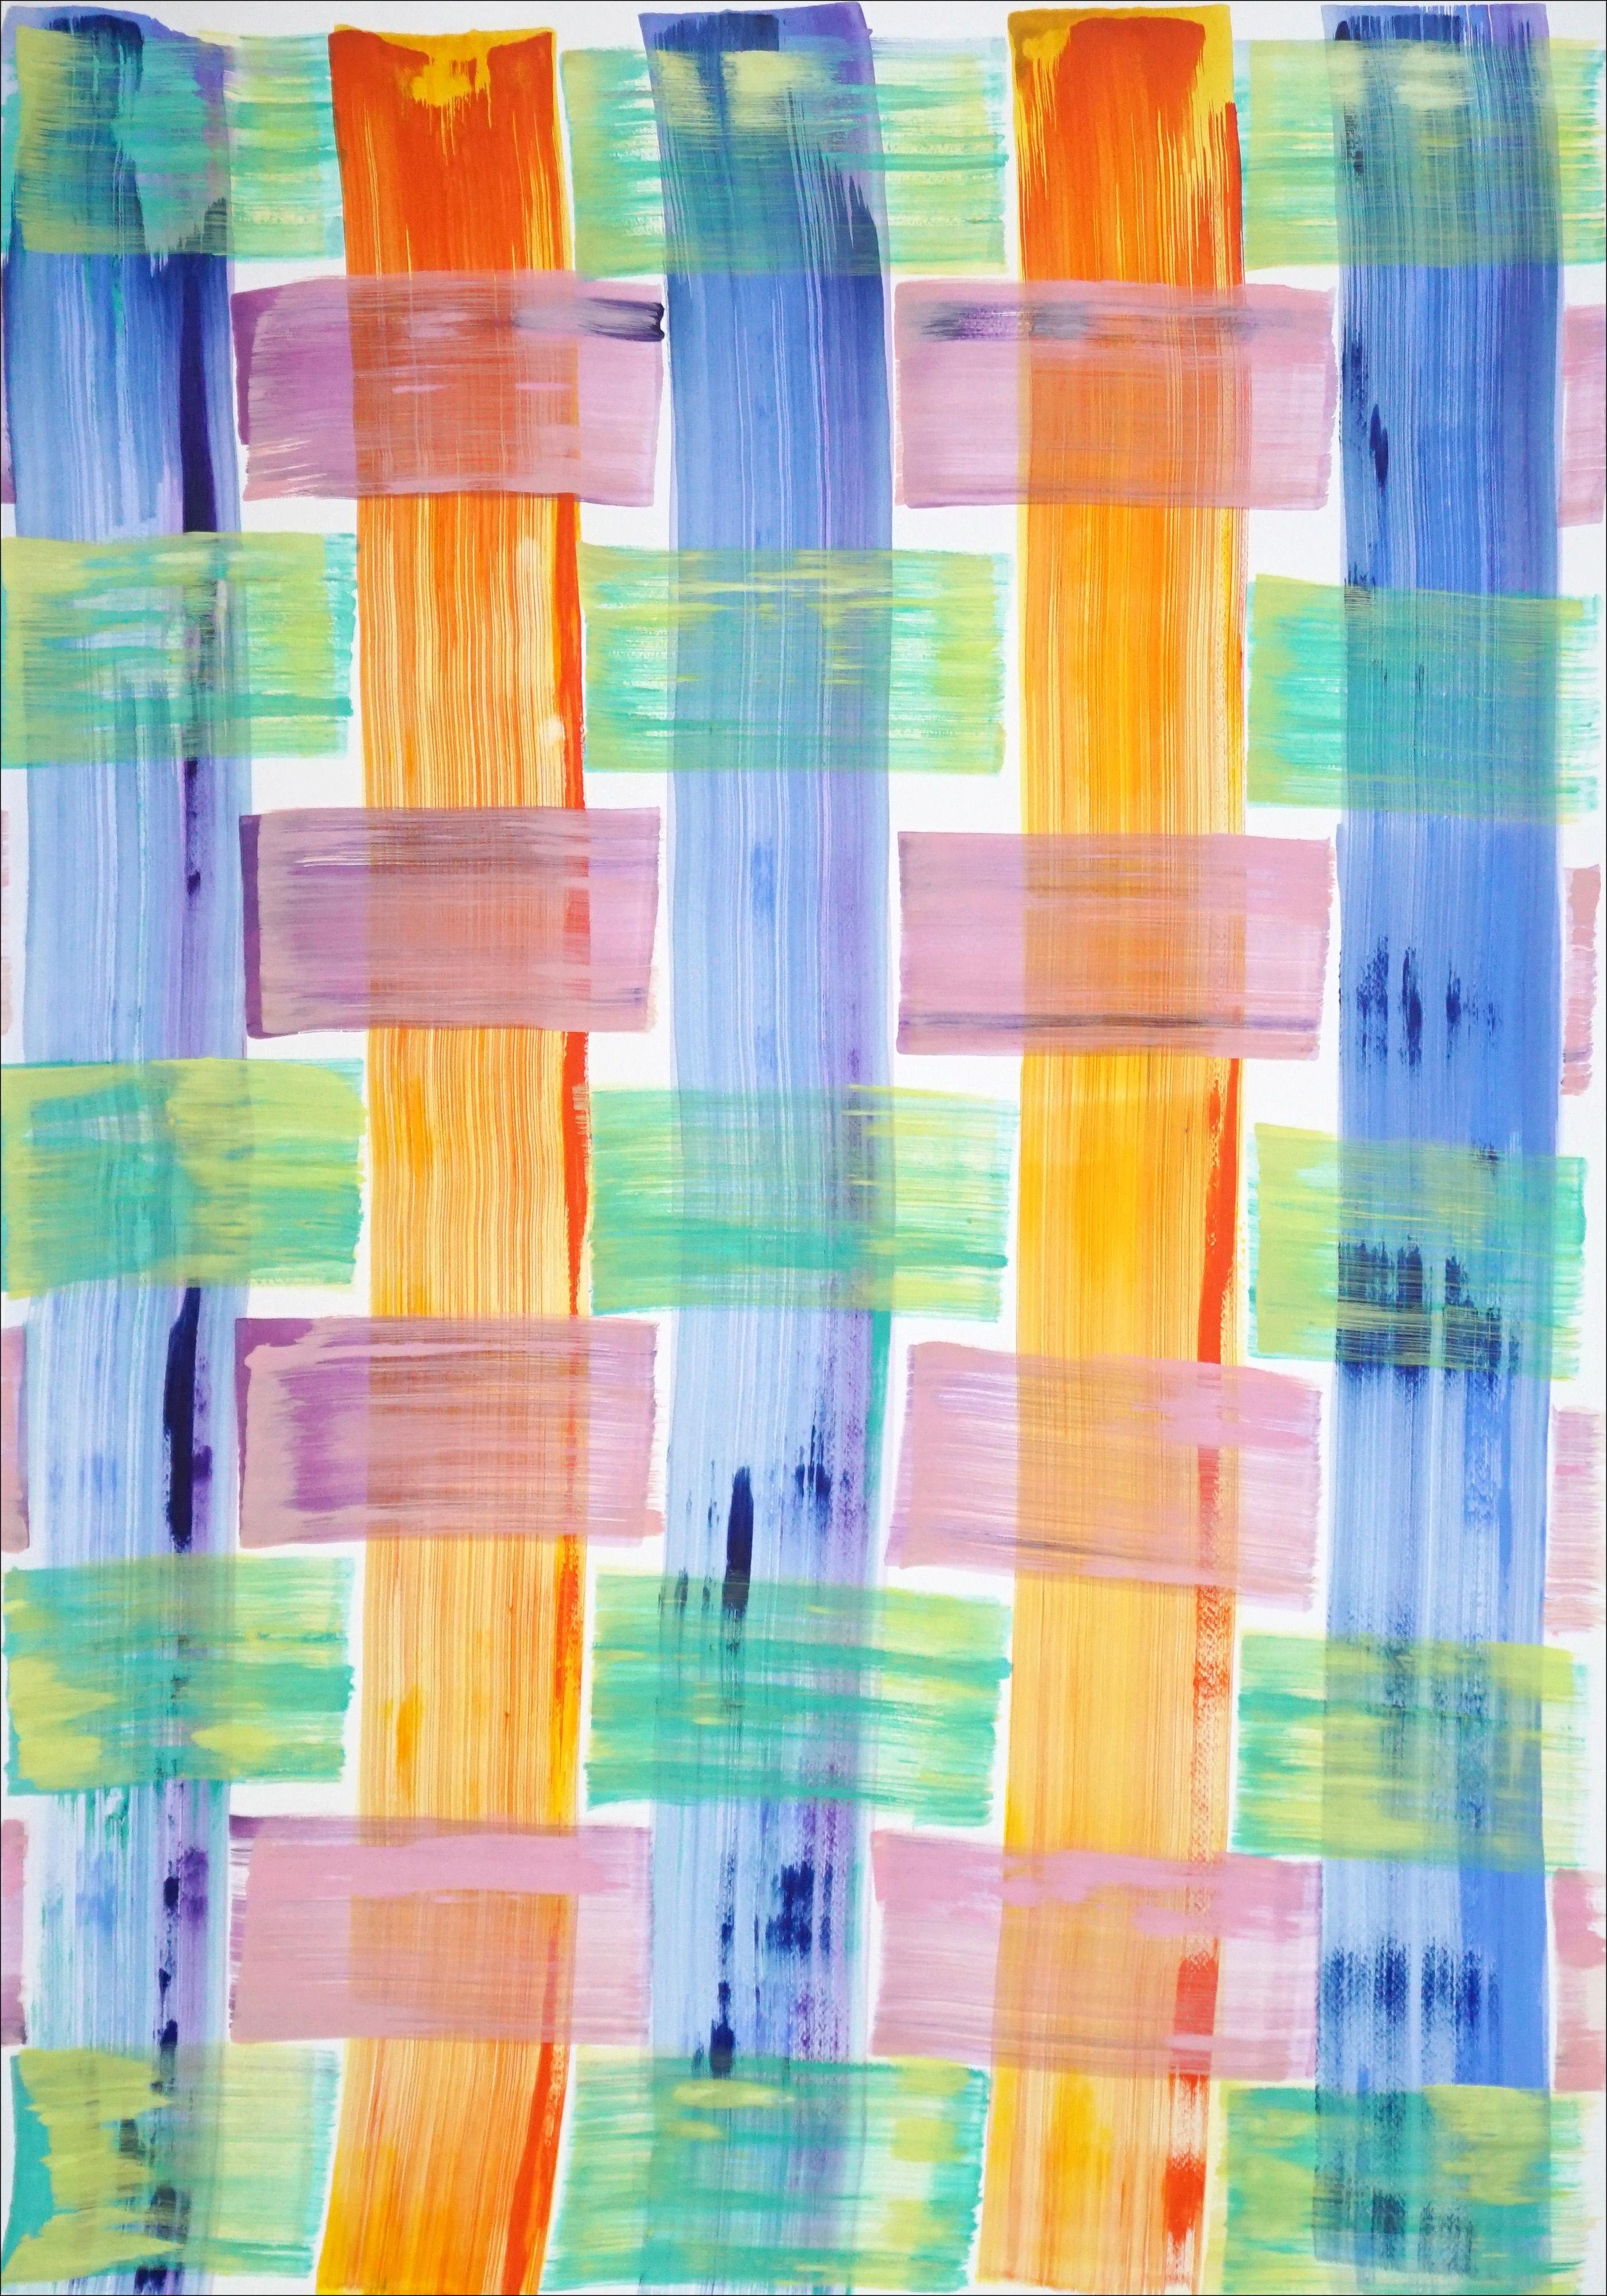 Modern Painting of Cold Tones Brushstroke Plaid Pattern, Beach Cabin Inspiration